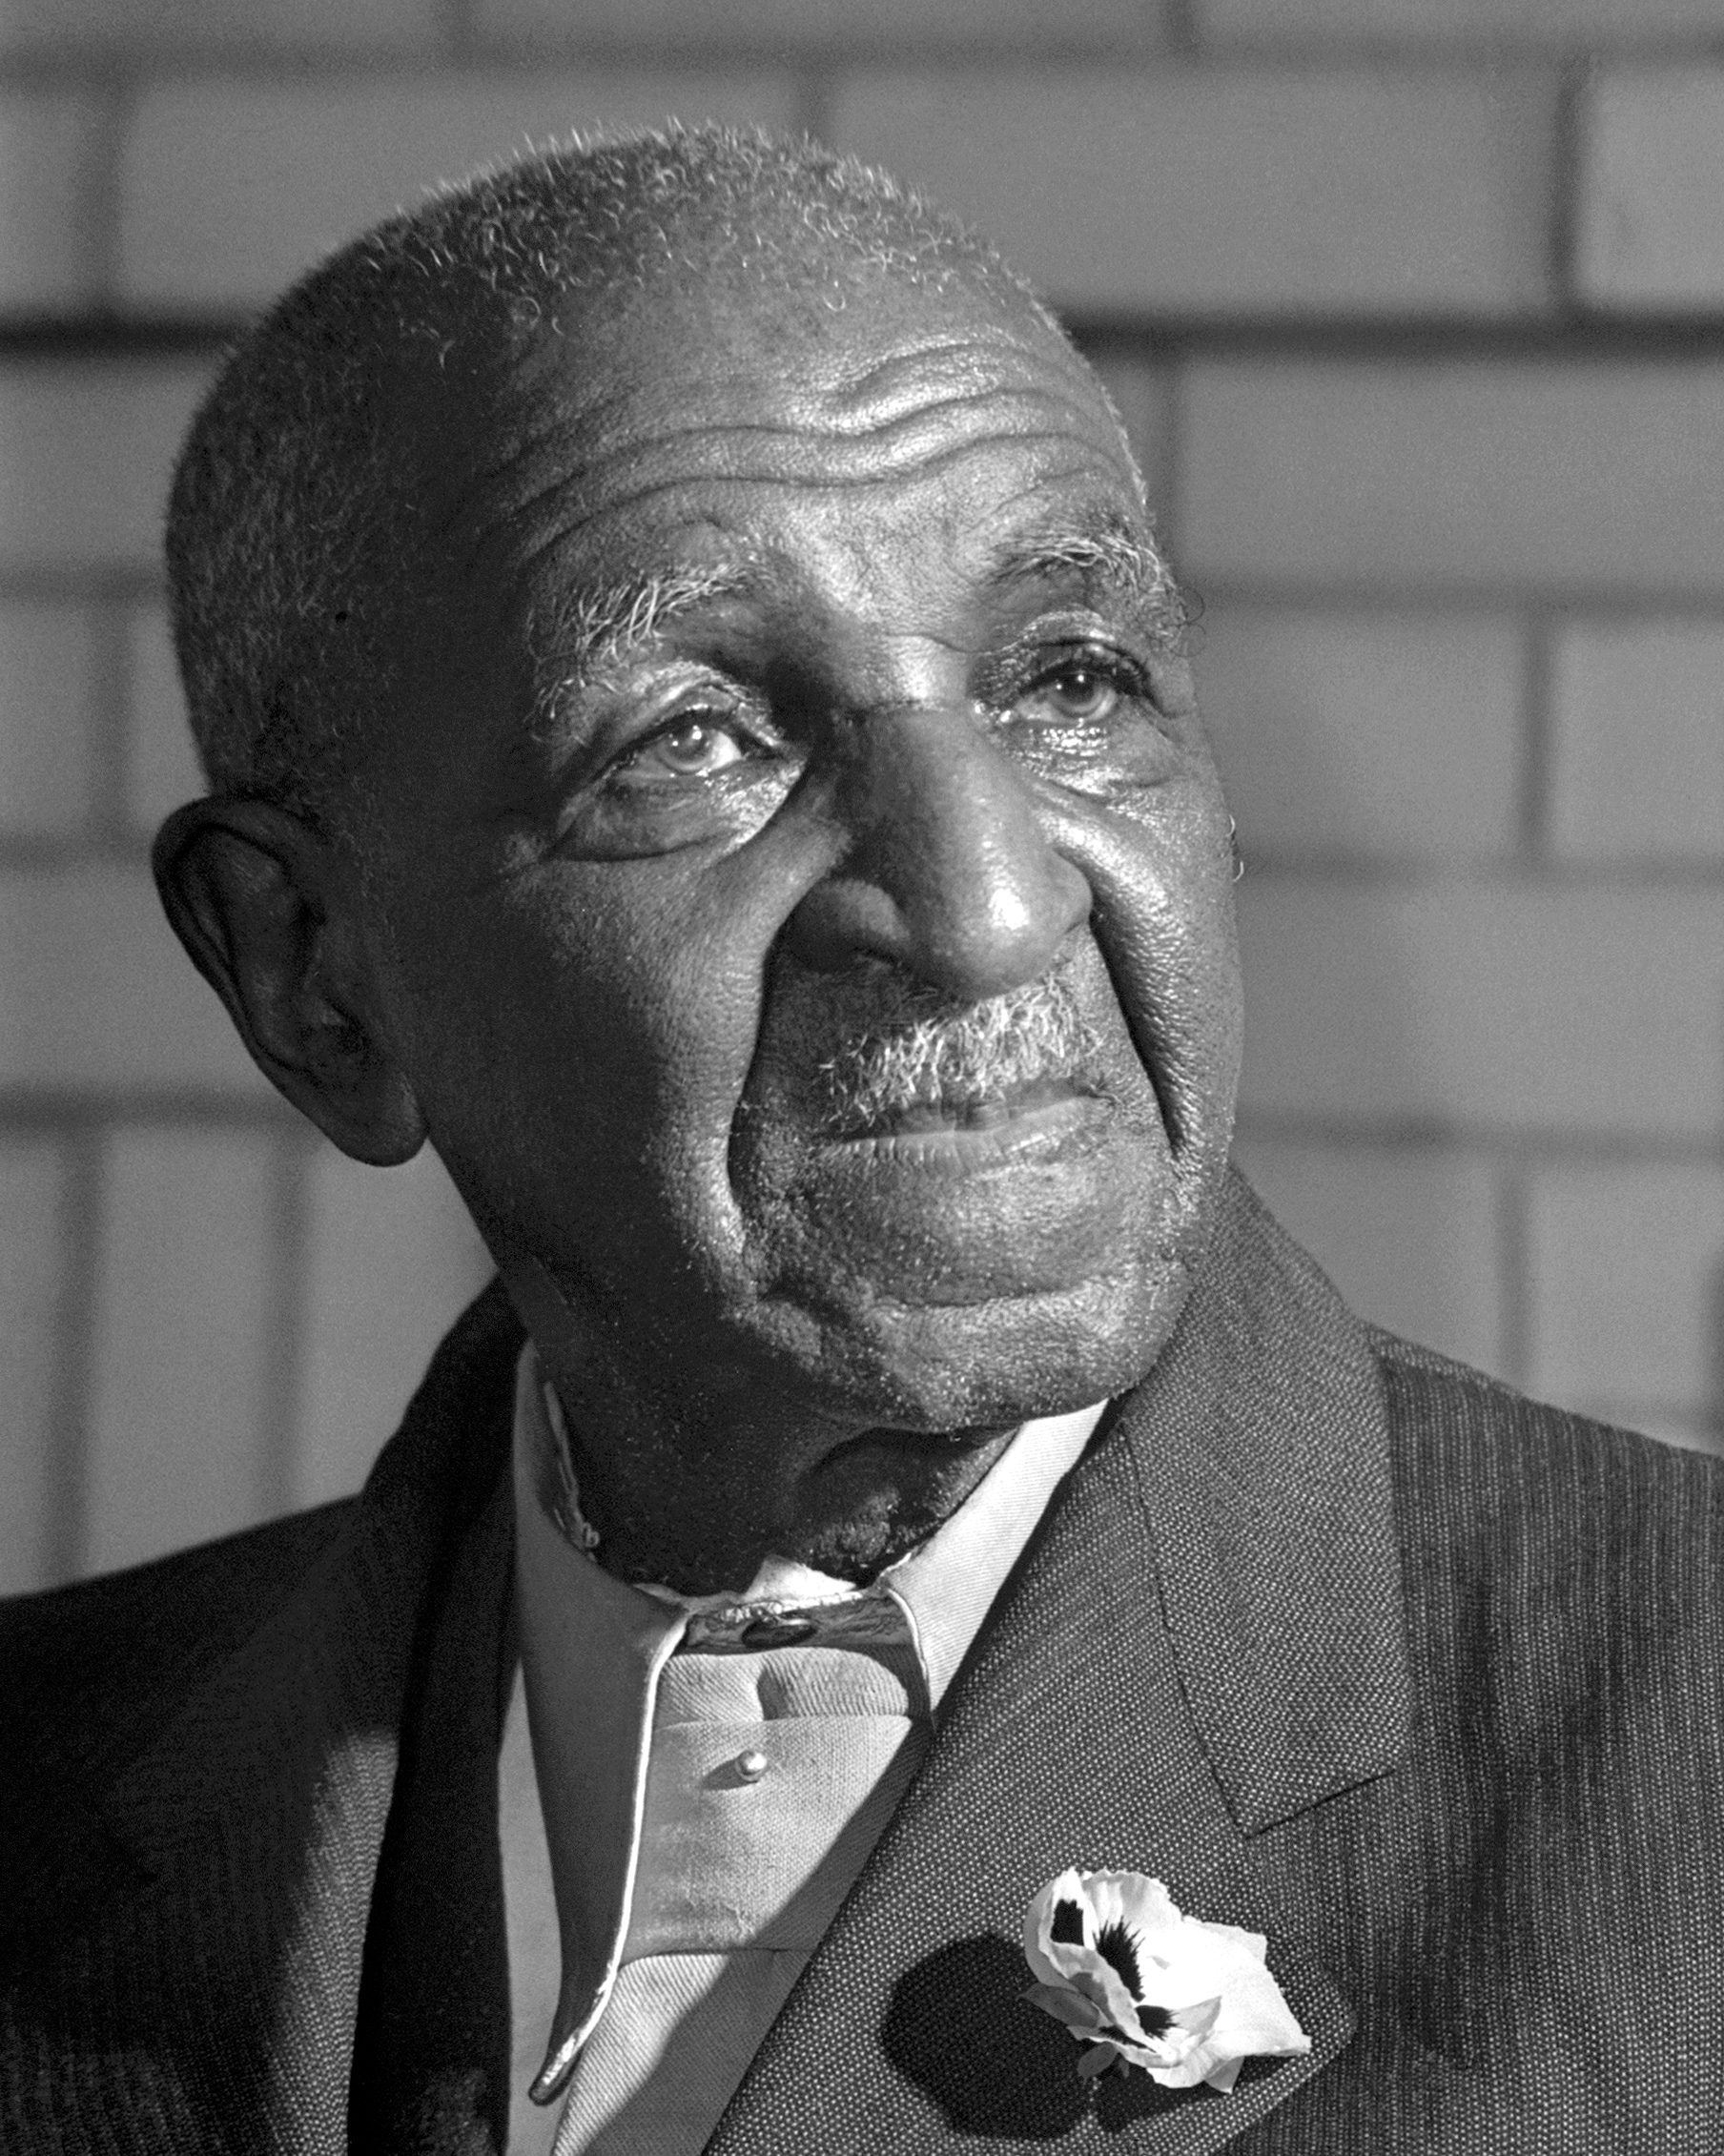 carver essay george washington George washington carver: biography of george washington carver, us  agricultural chemist whose products derived from peanuts helped revolutionize.